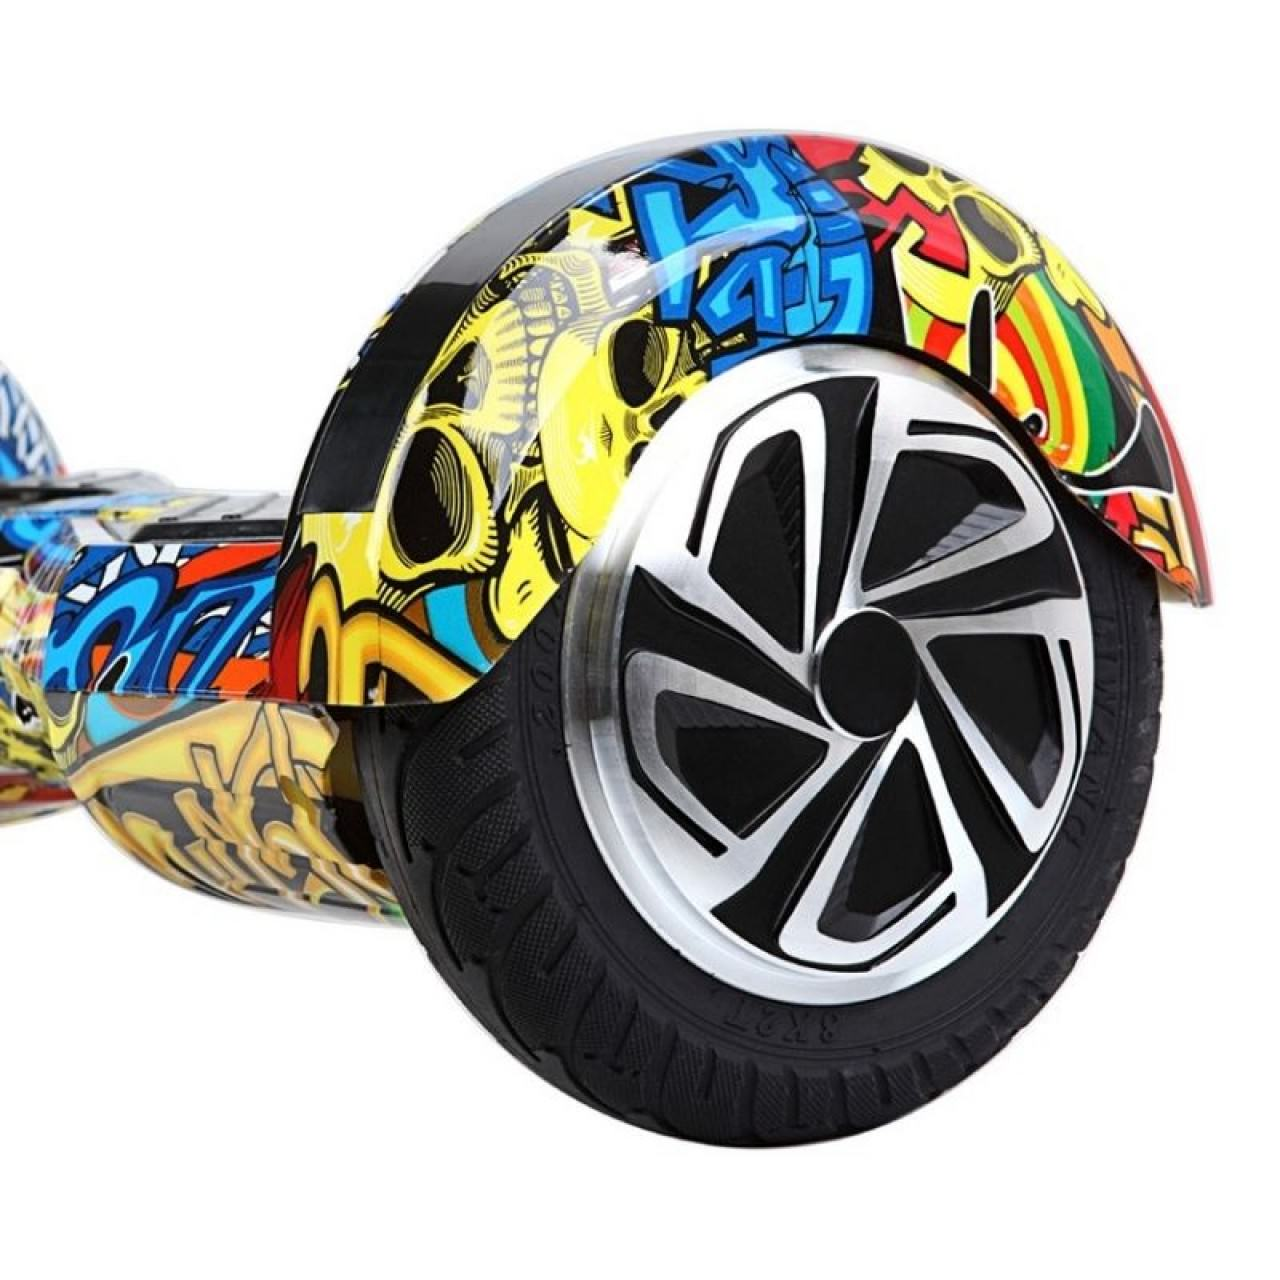 10 inch hoverboard hiphop2